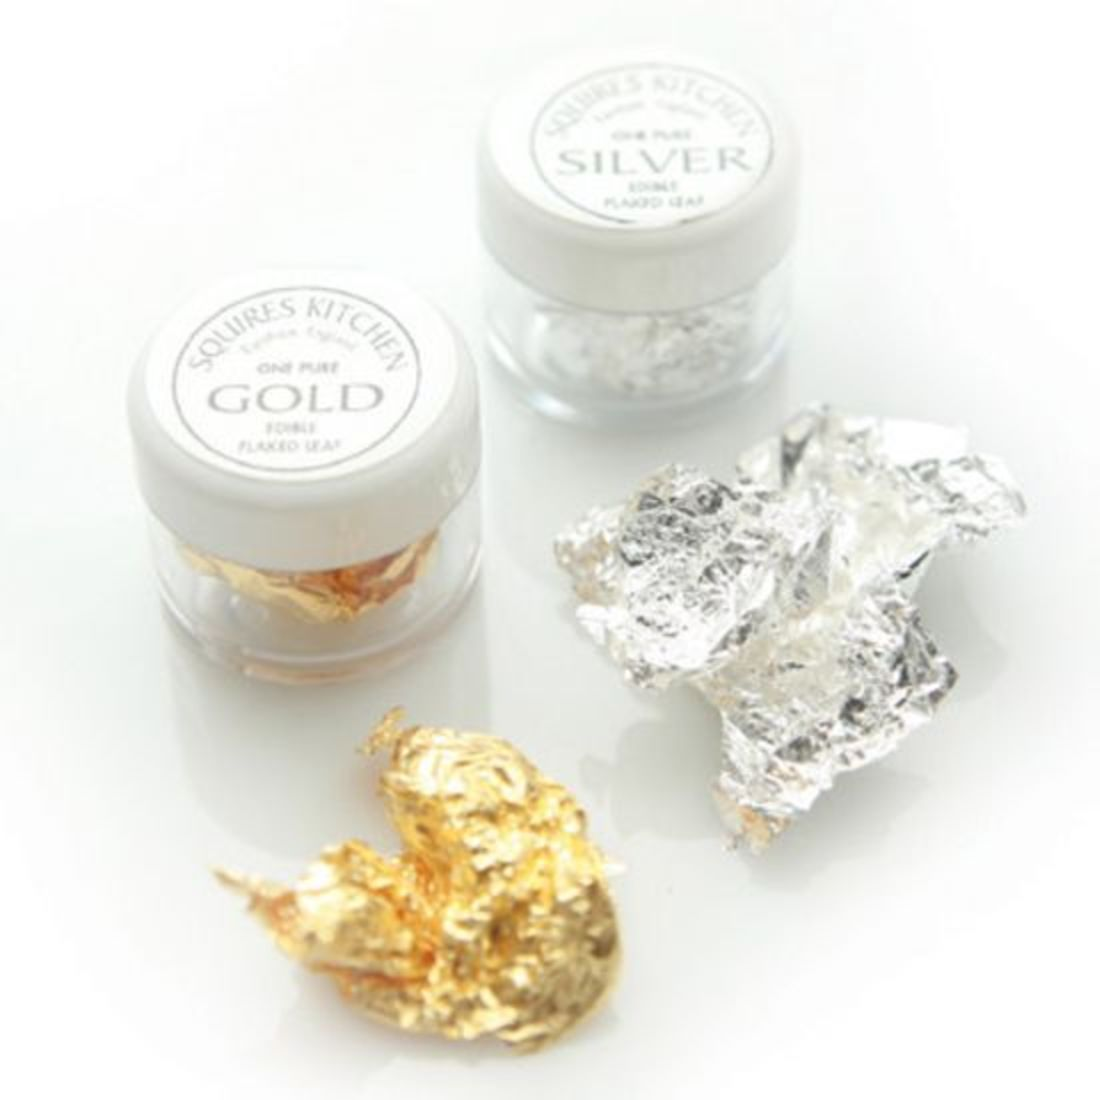 SK Edible Gold Leaf Flake Cakers World